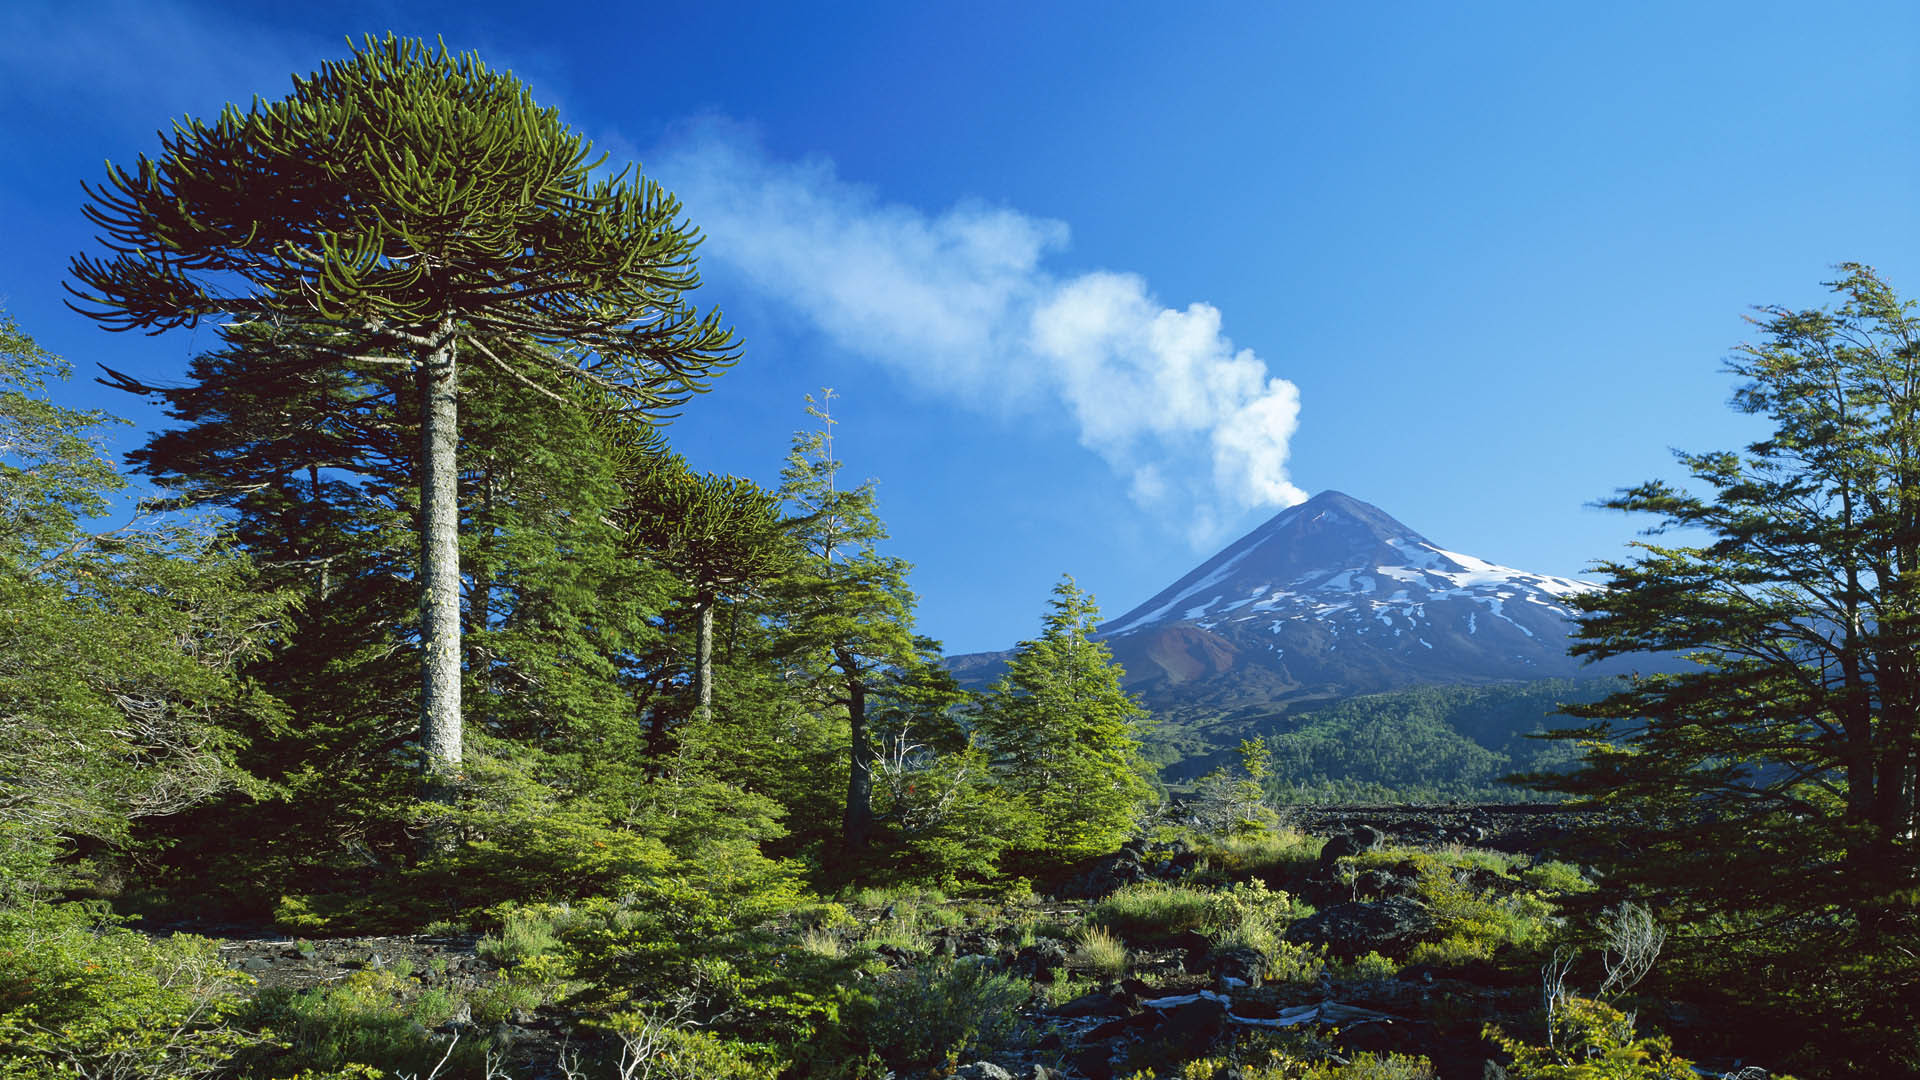 31964 download wallpaper Landscape, Trees, Mountains screensavers and pictures for free